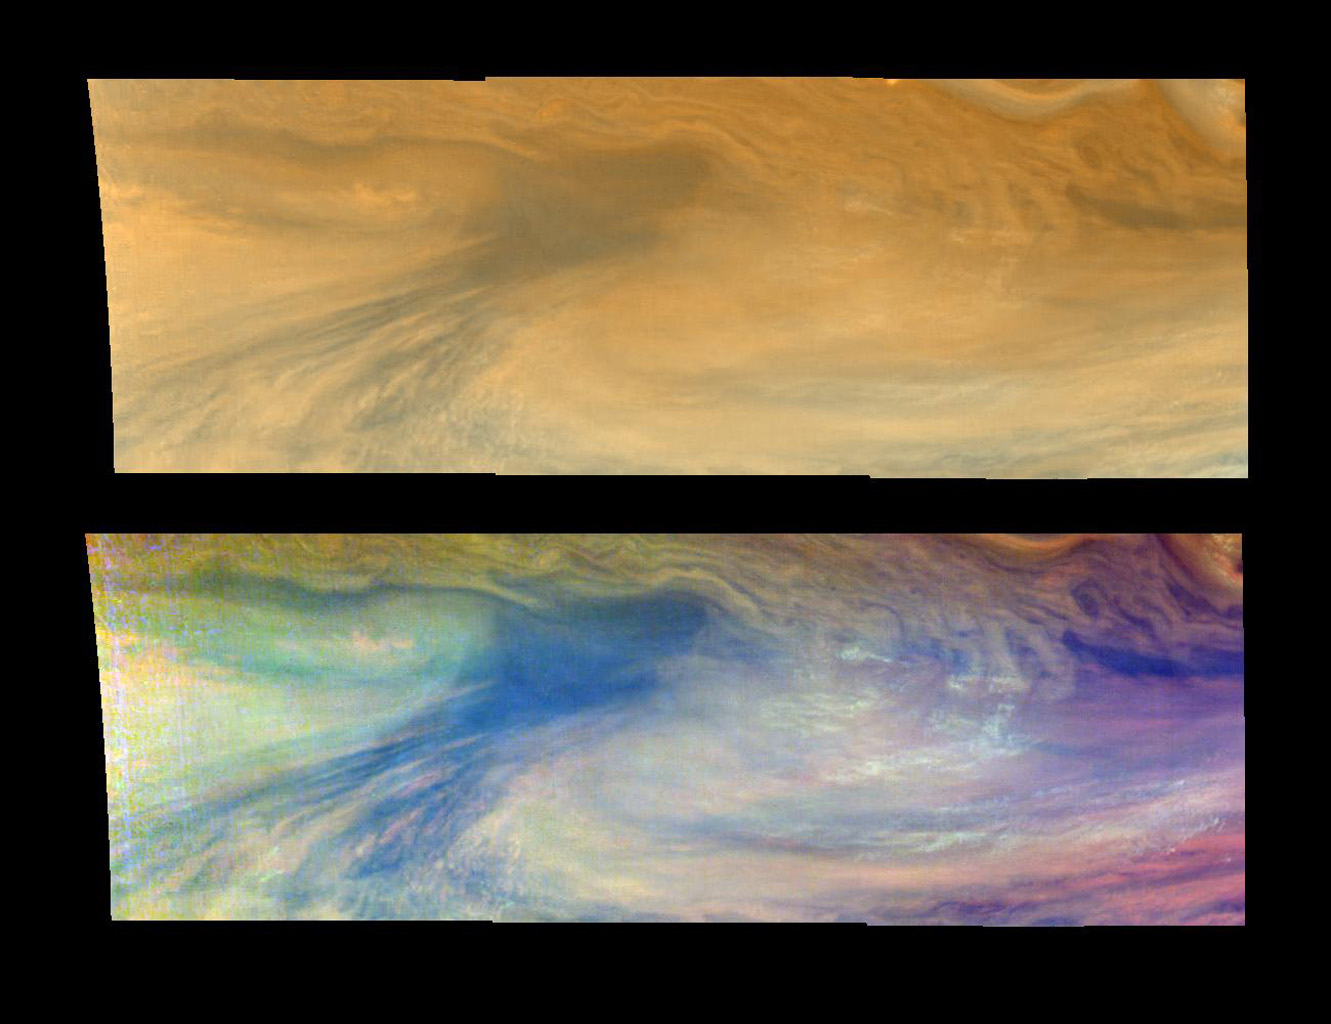 These true and false color views of an equatorial 'hotspot' on Jupiter were taken by NASA's Galileo spacecraft on Dec. 17, 1996.